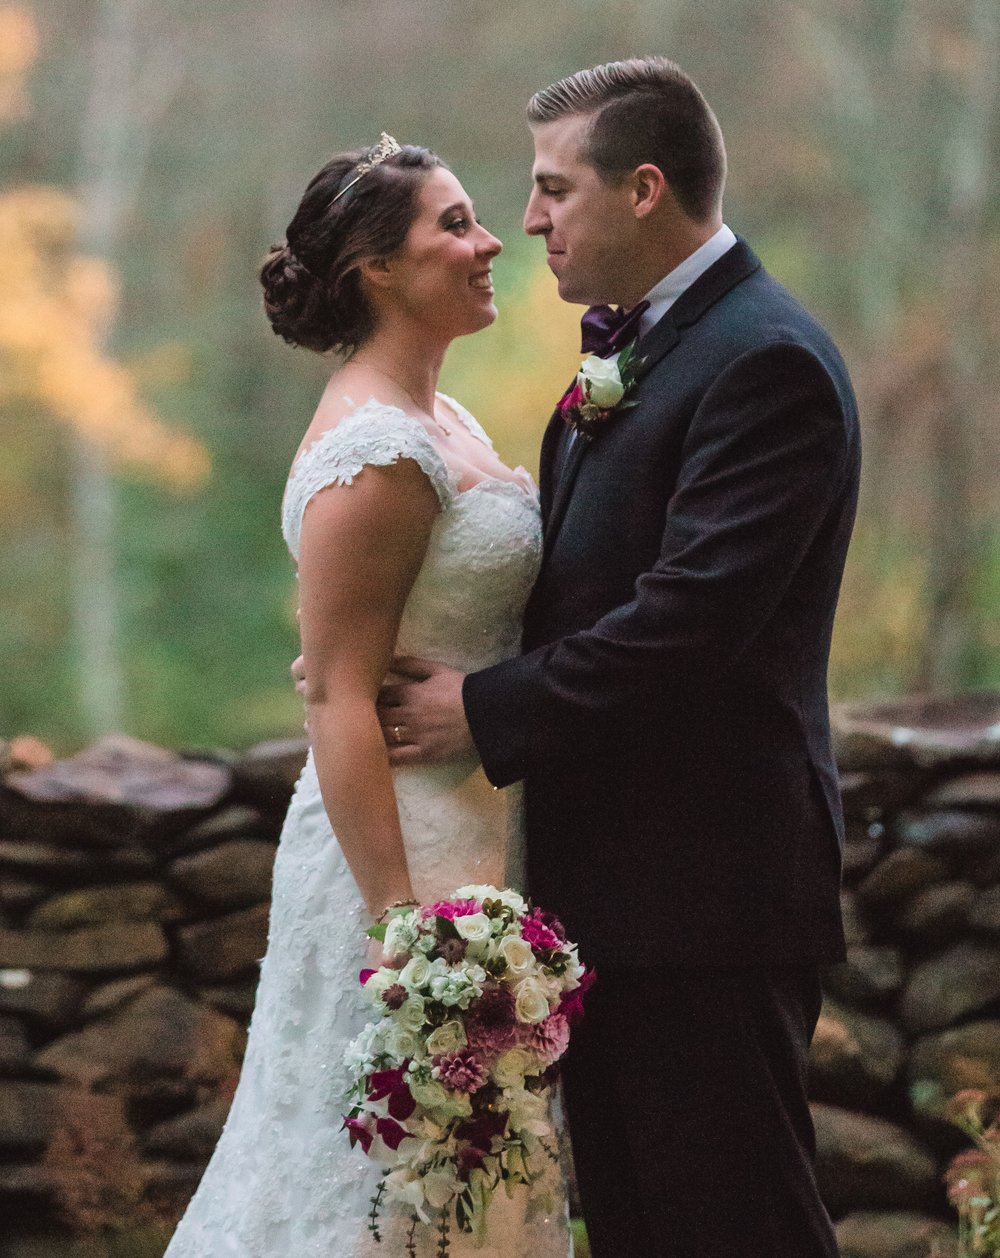 Cranberry Country Wedding  Chelsey and Tylor were married in October - flowers included roses with garden dahlias & basil.